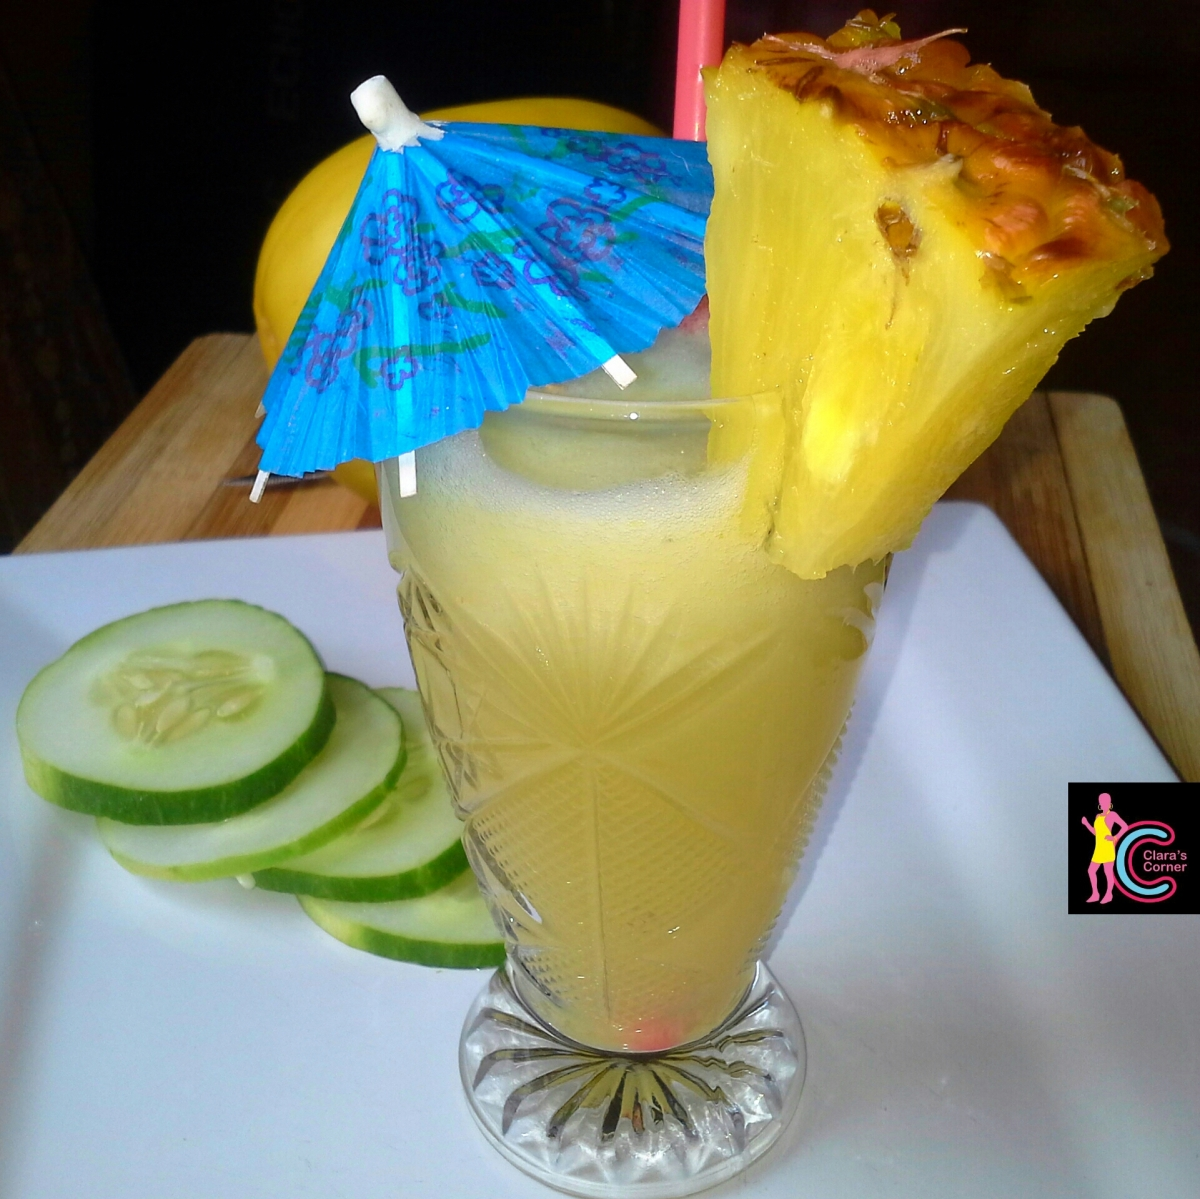 Golden Melon Pineapple Juice